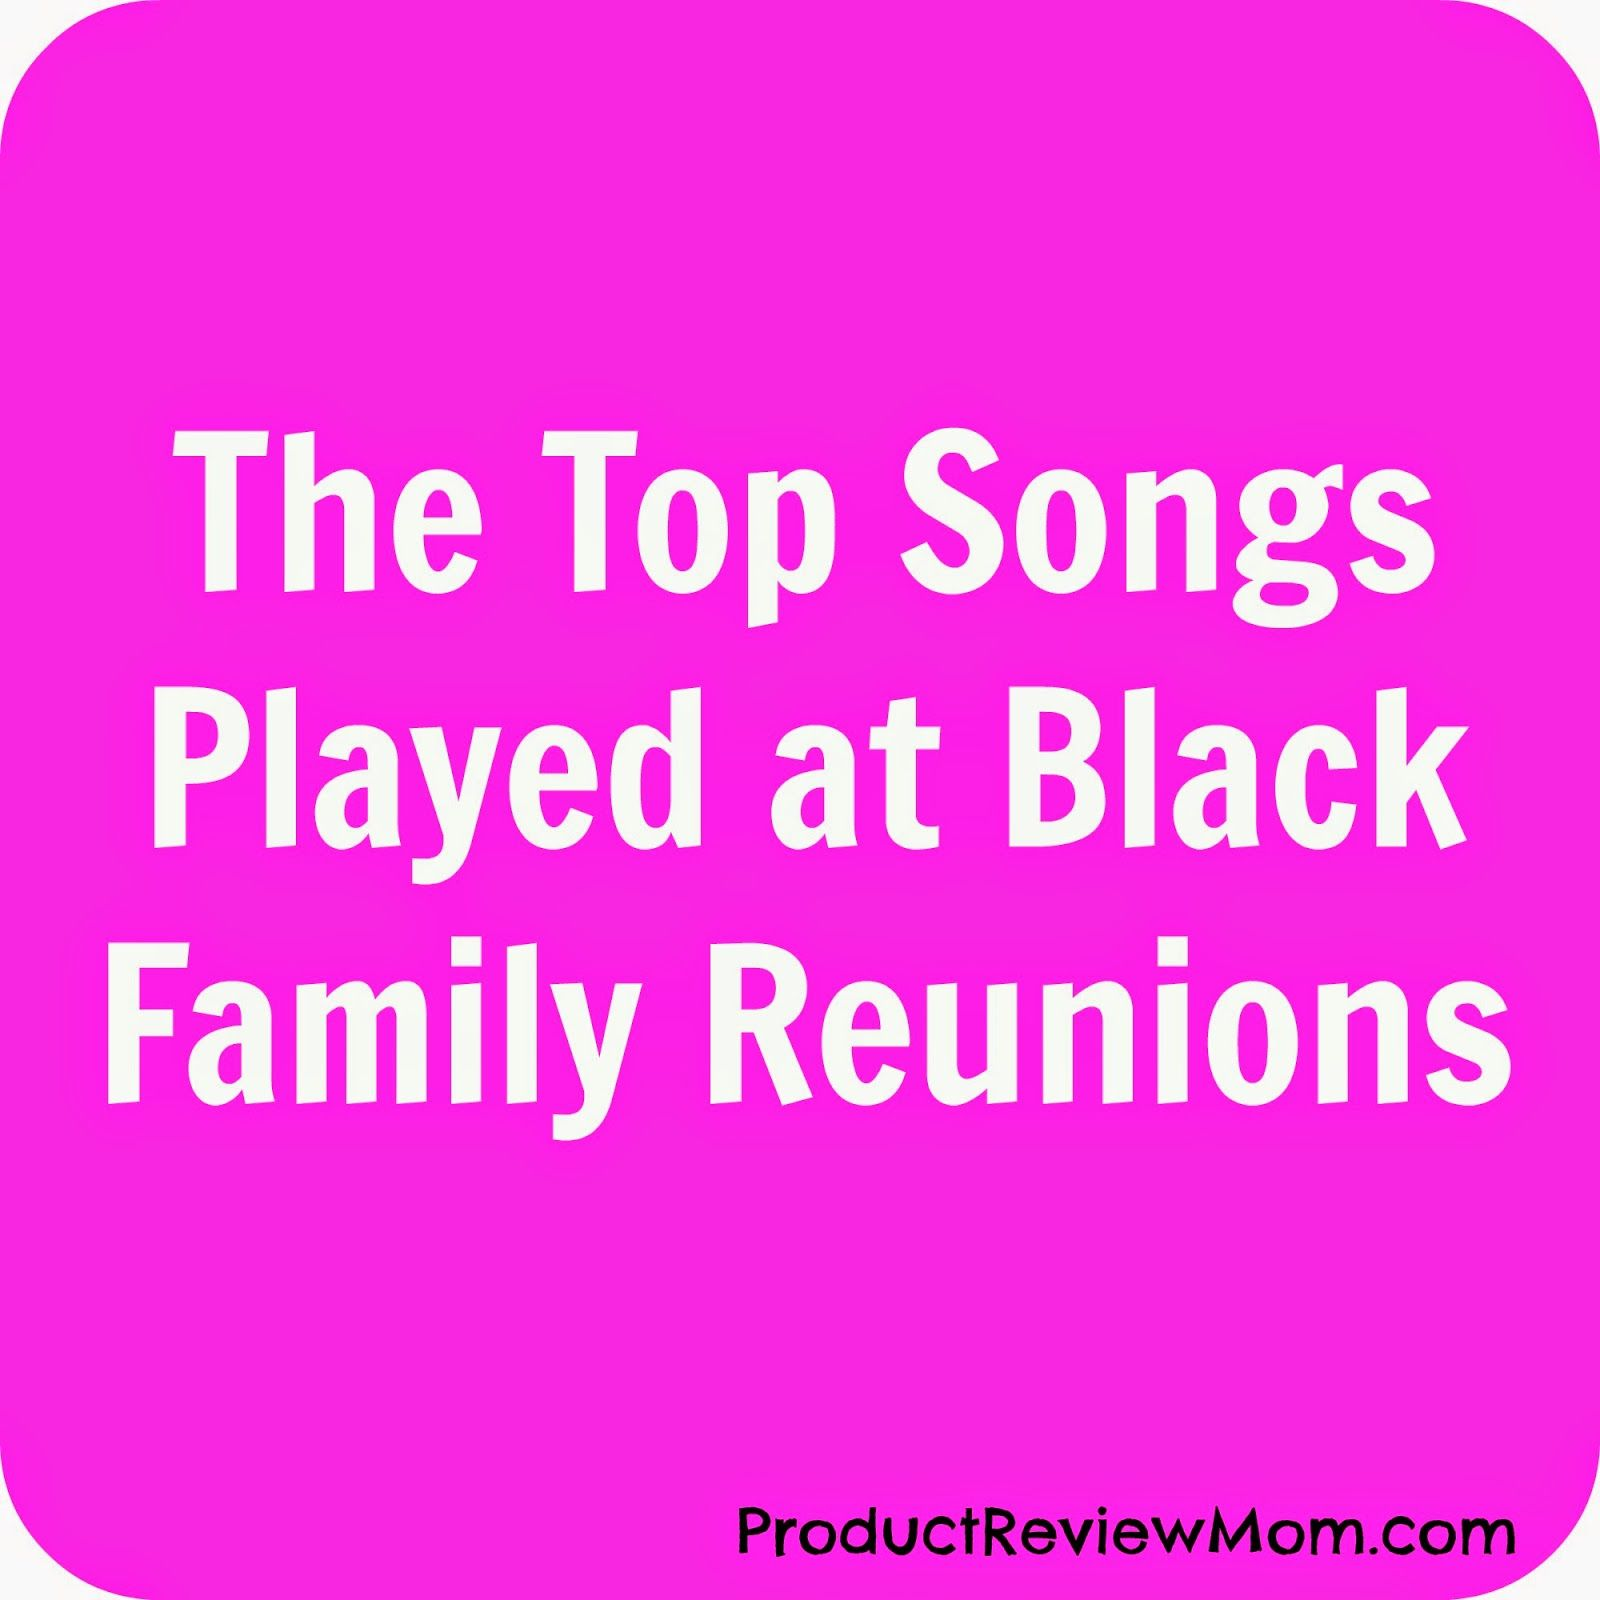 Pics photos african american family reunion slogans - The Top Songs Played At Black Family Reunions Via Productreviewmom Com Familyreunion